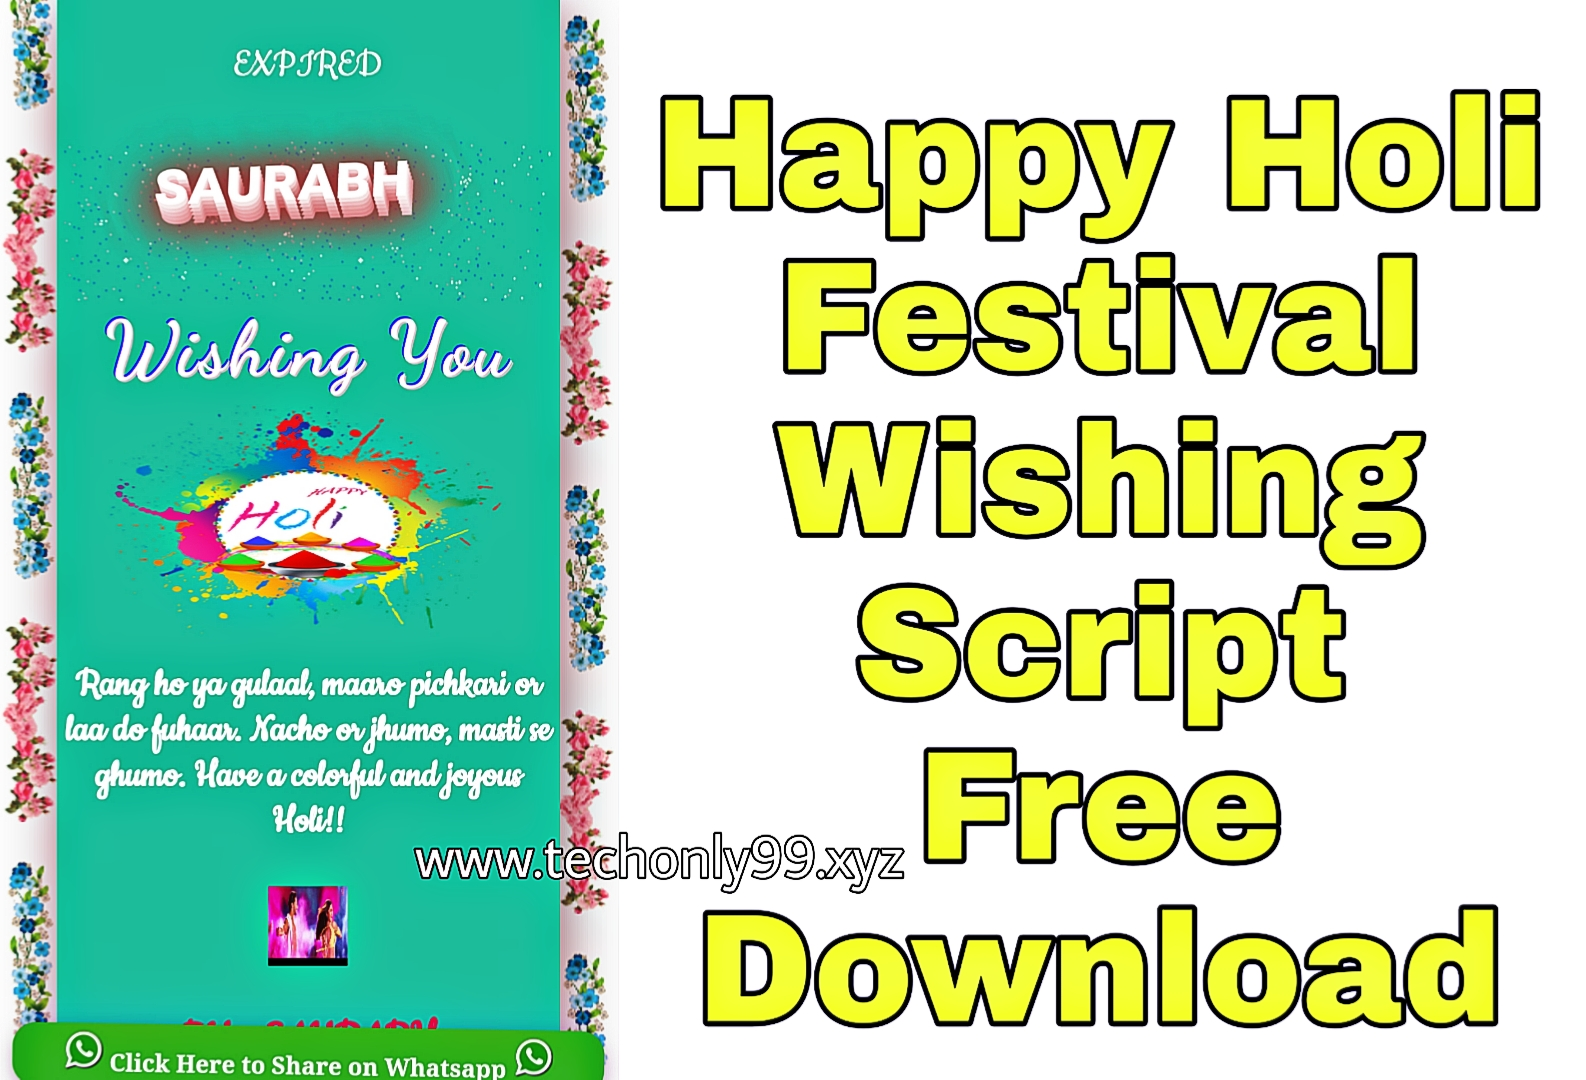 Happy Holi Wishing Script Free Download | Happy Holi Festival Wishes